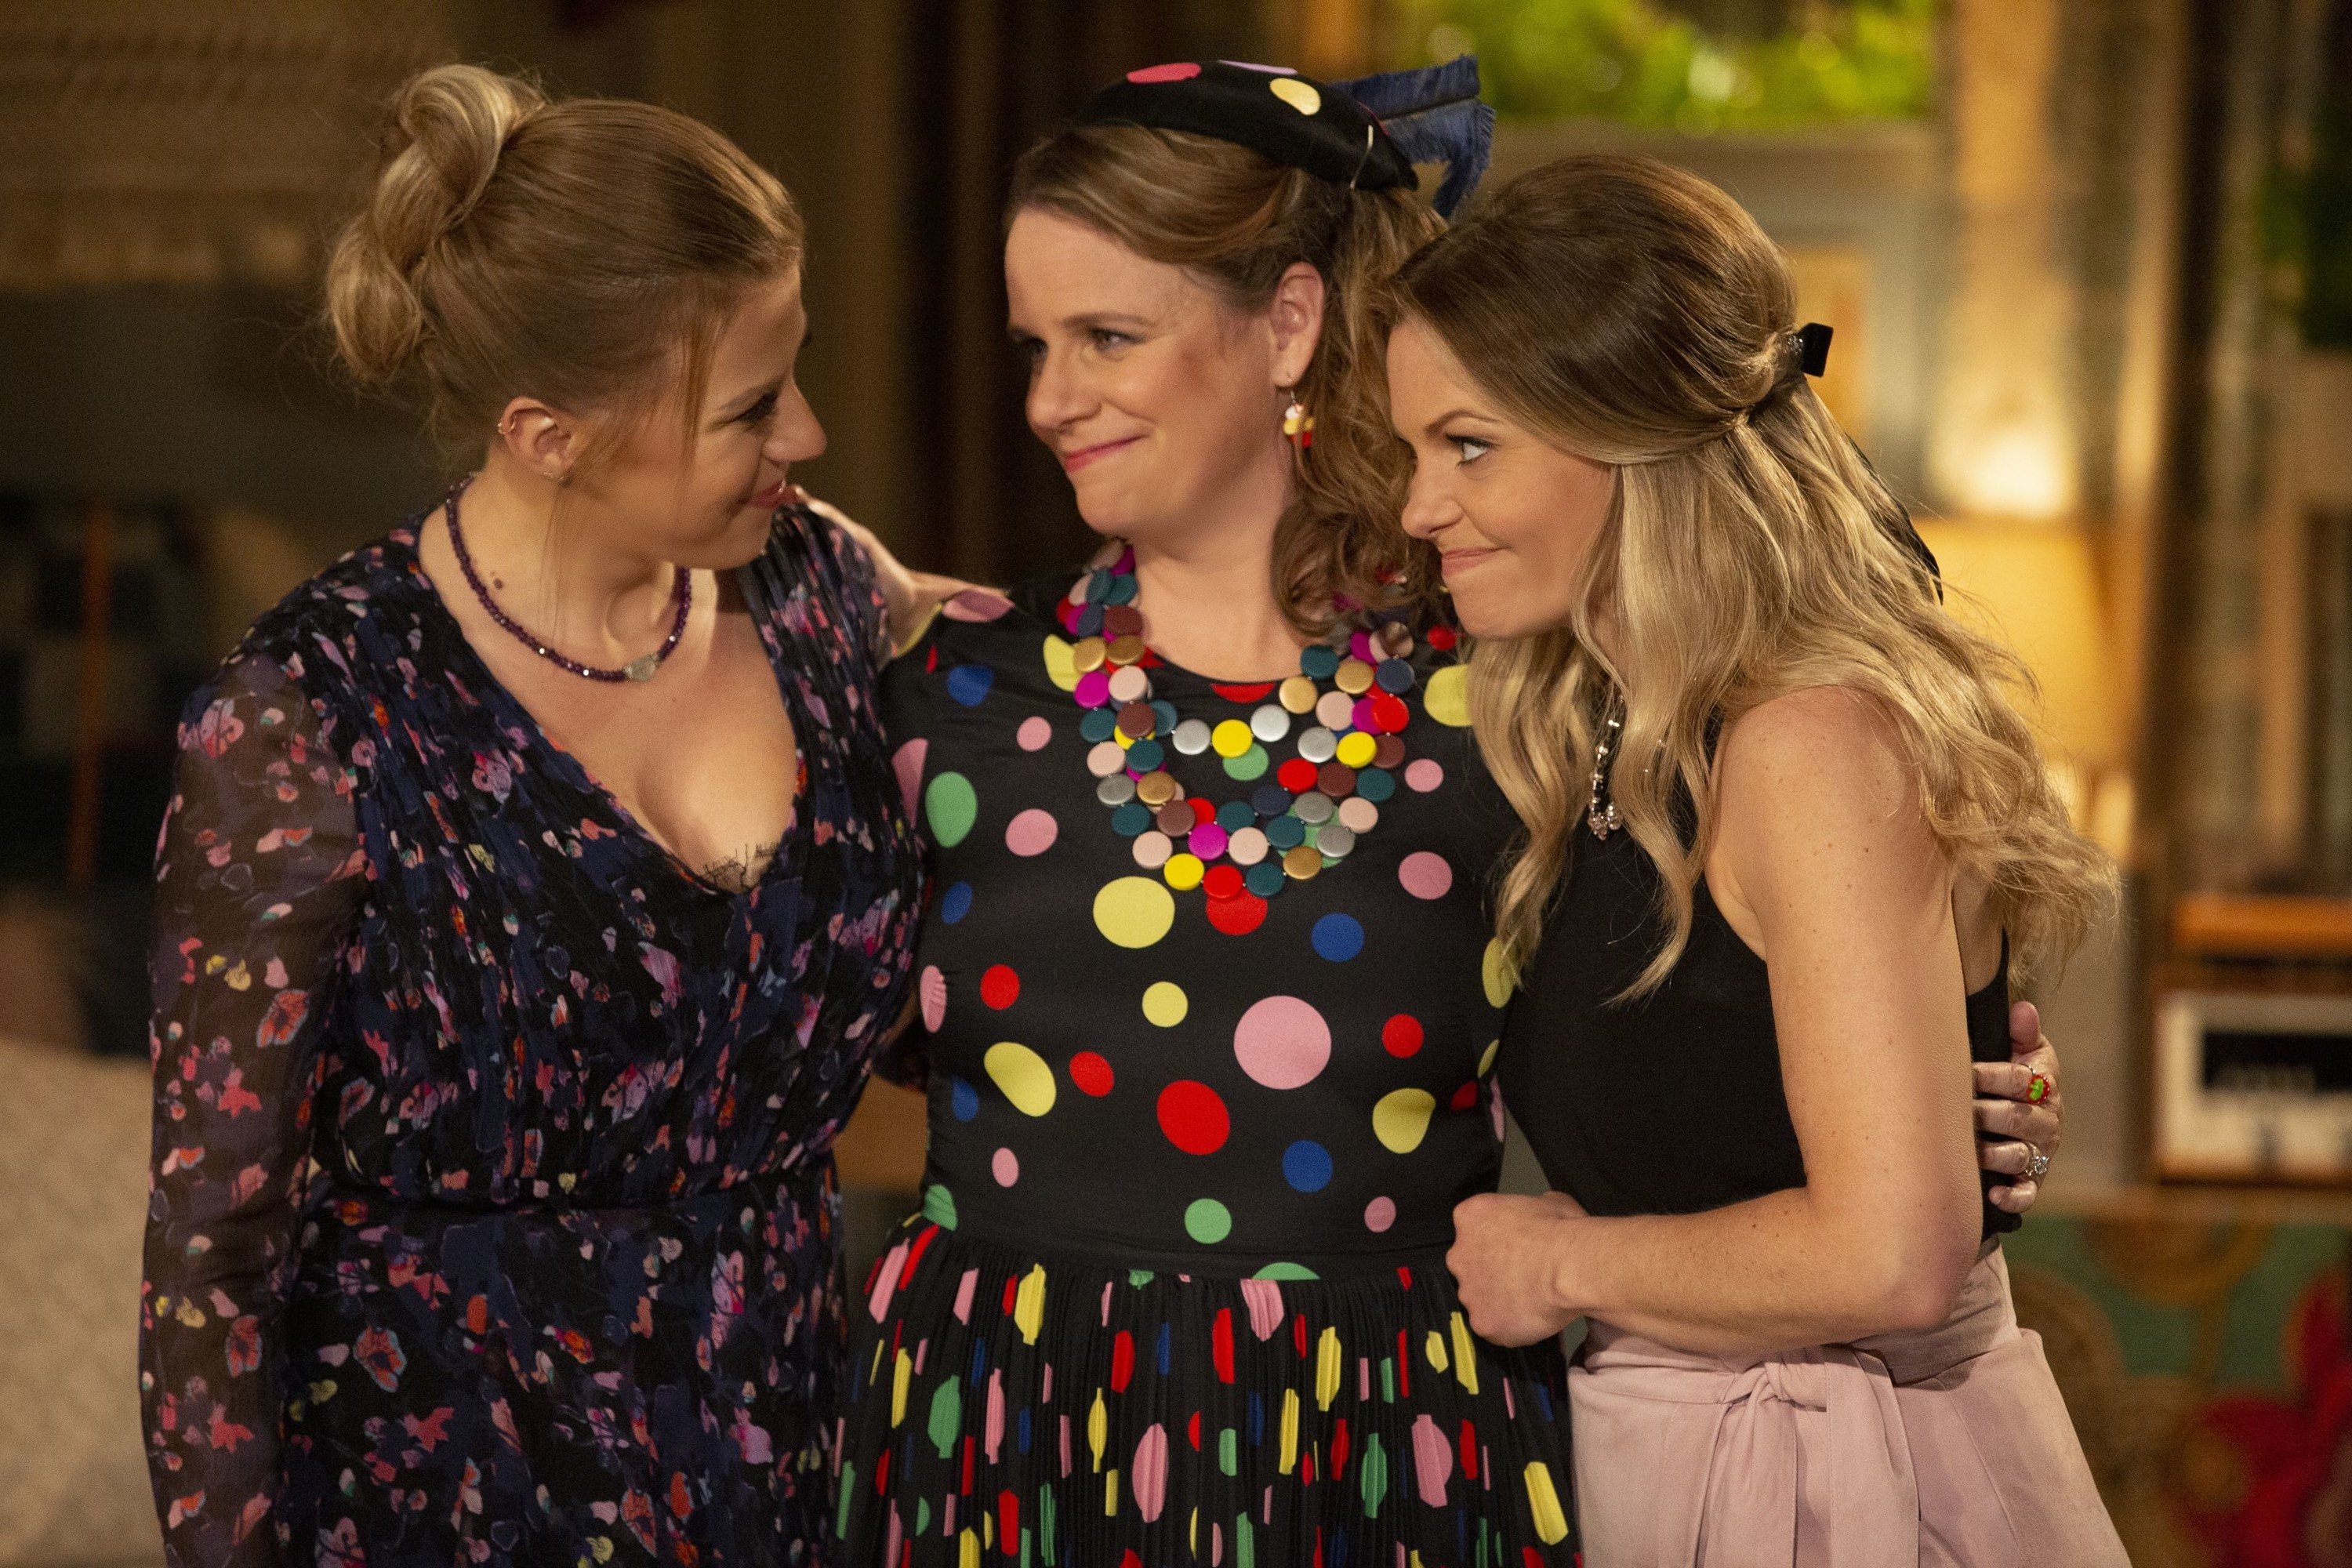 Andrea Potter Porn fuller house bff quiz: candace, jodie, and andrea edition